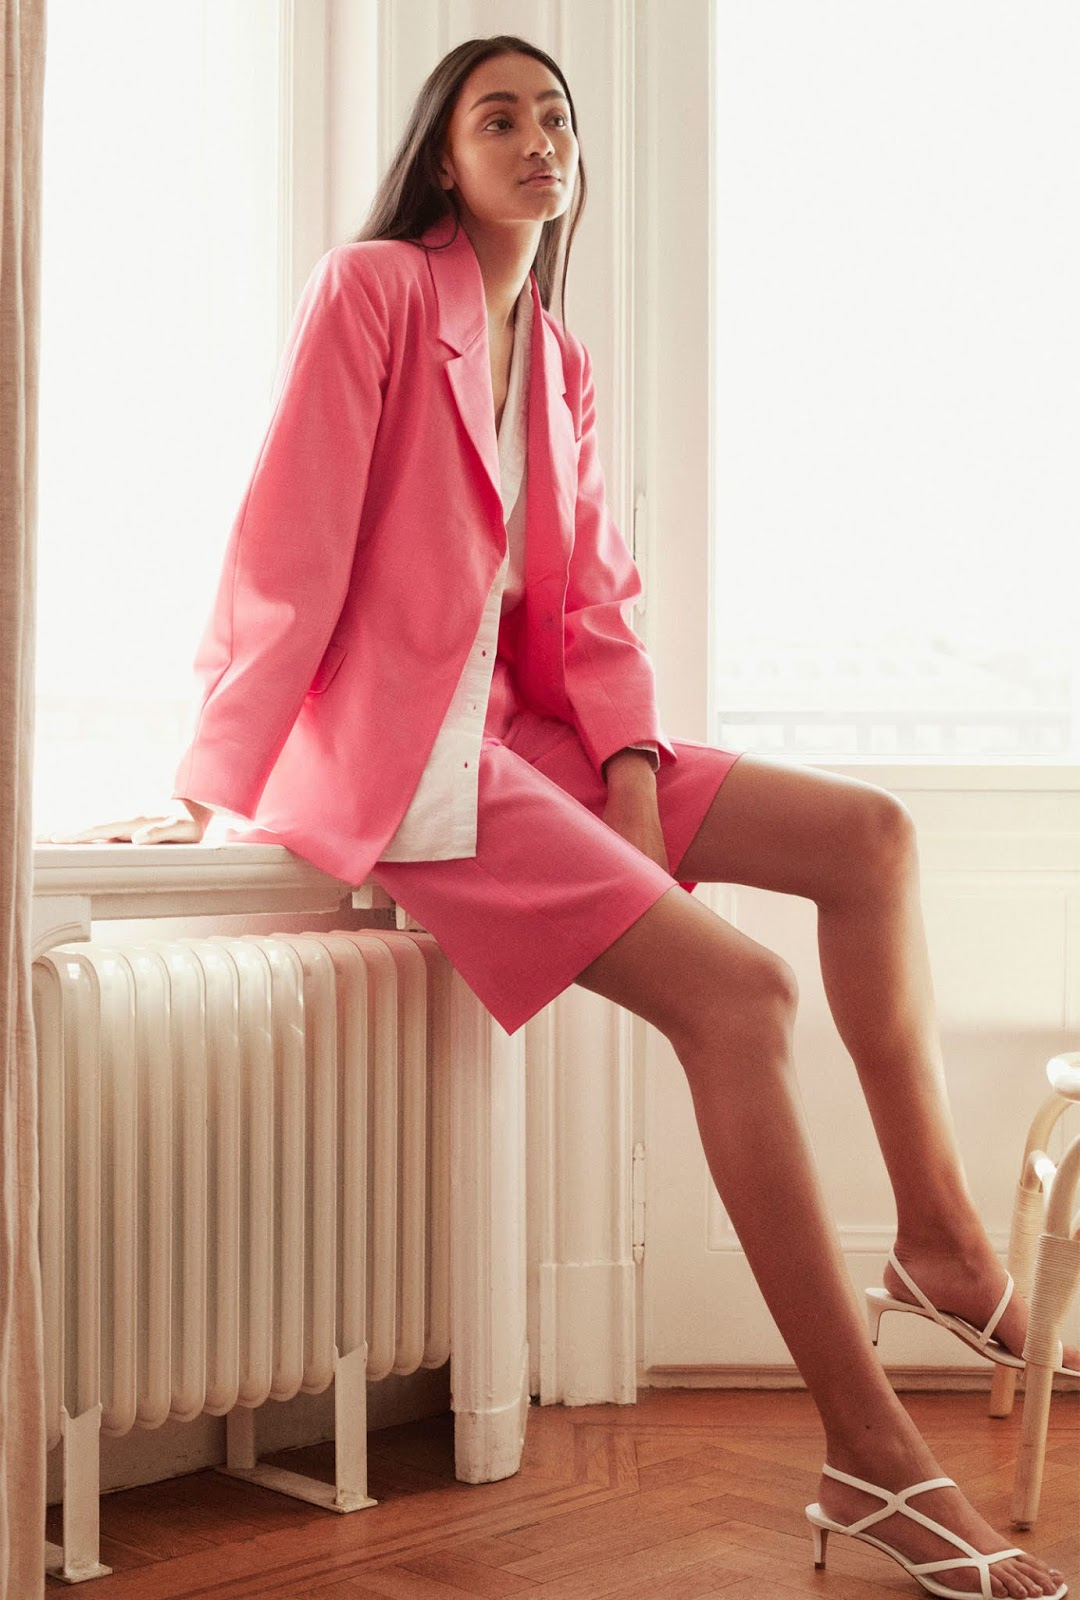 4 Budget-Friendly Summer Outfit Ideas —  Shorts Suit With a Pink Blazer and Pink Shorts